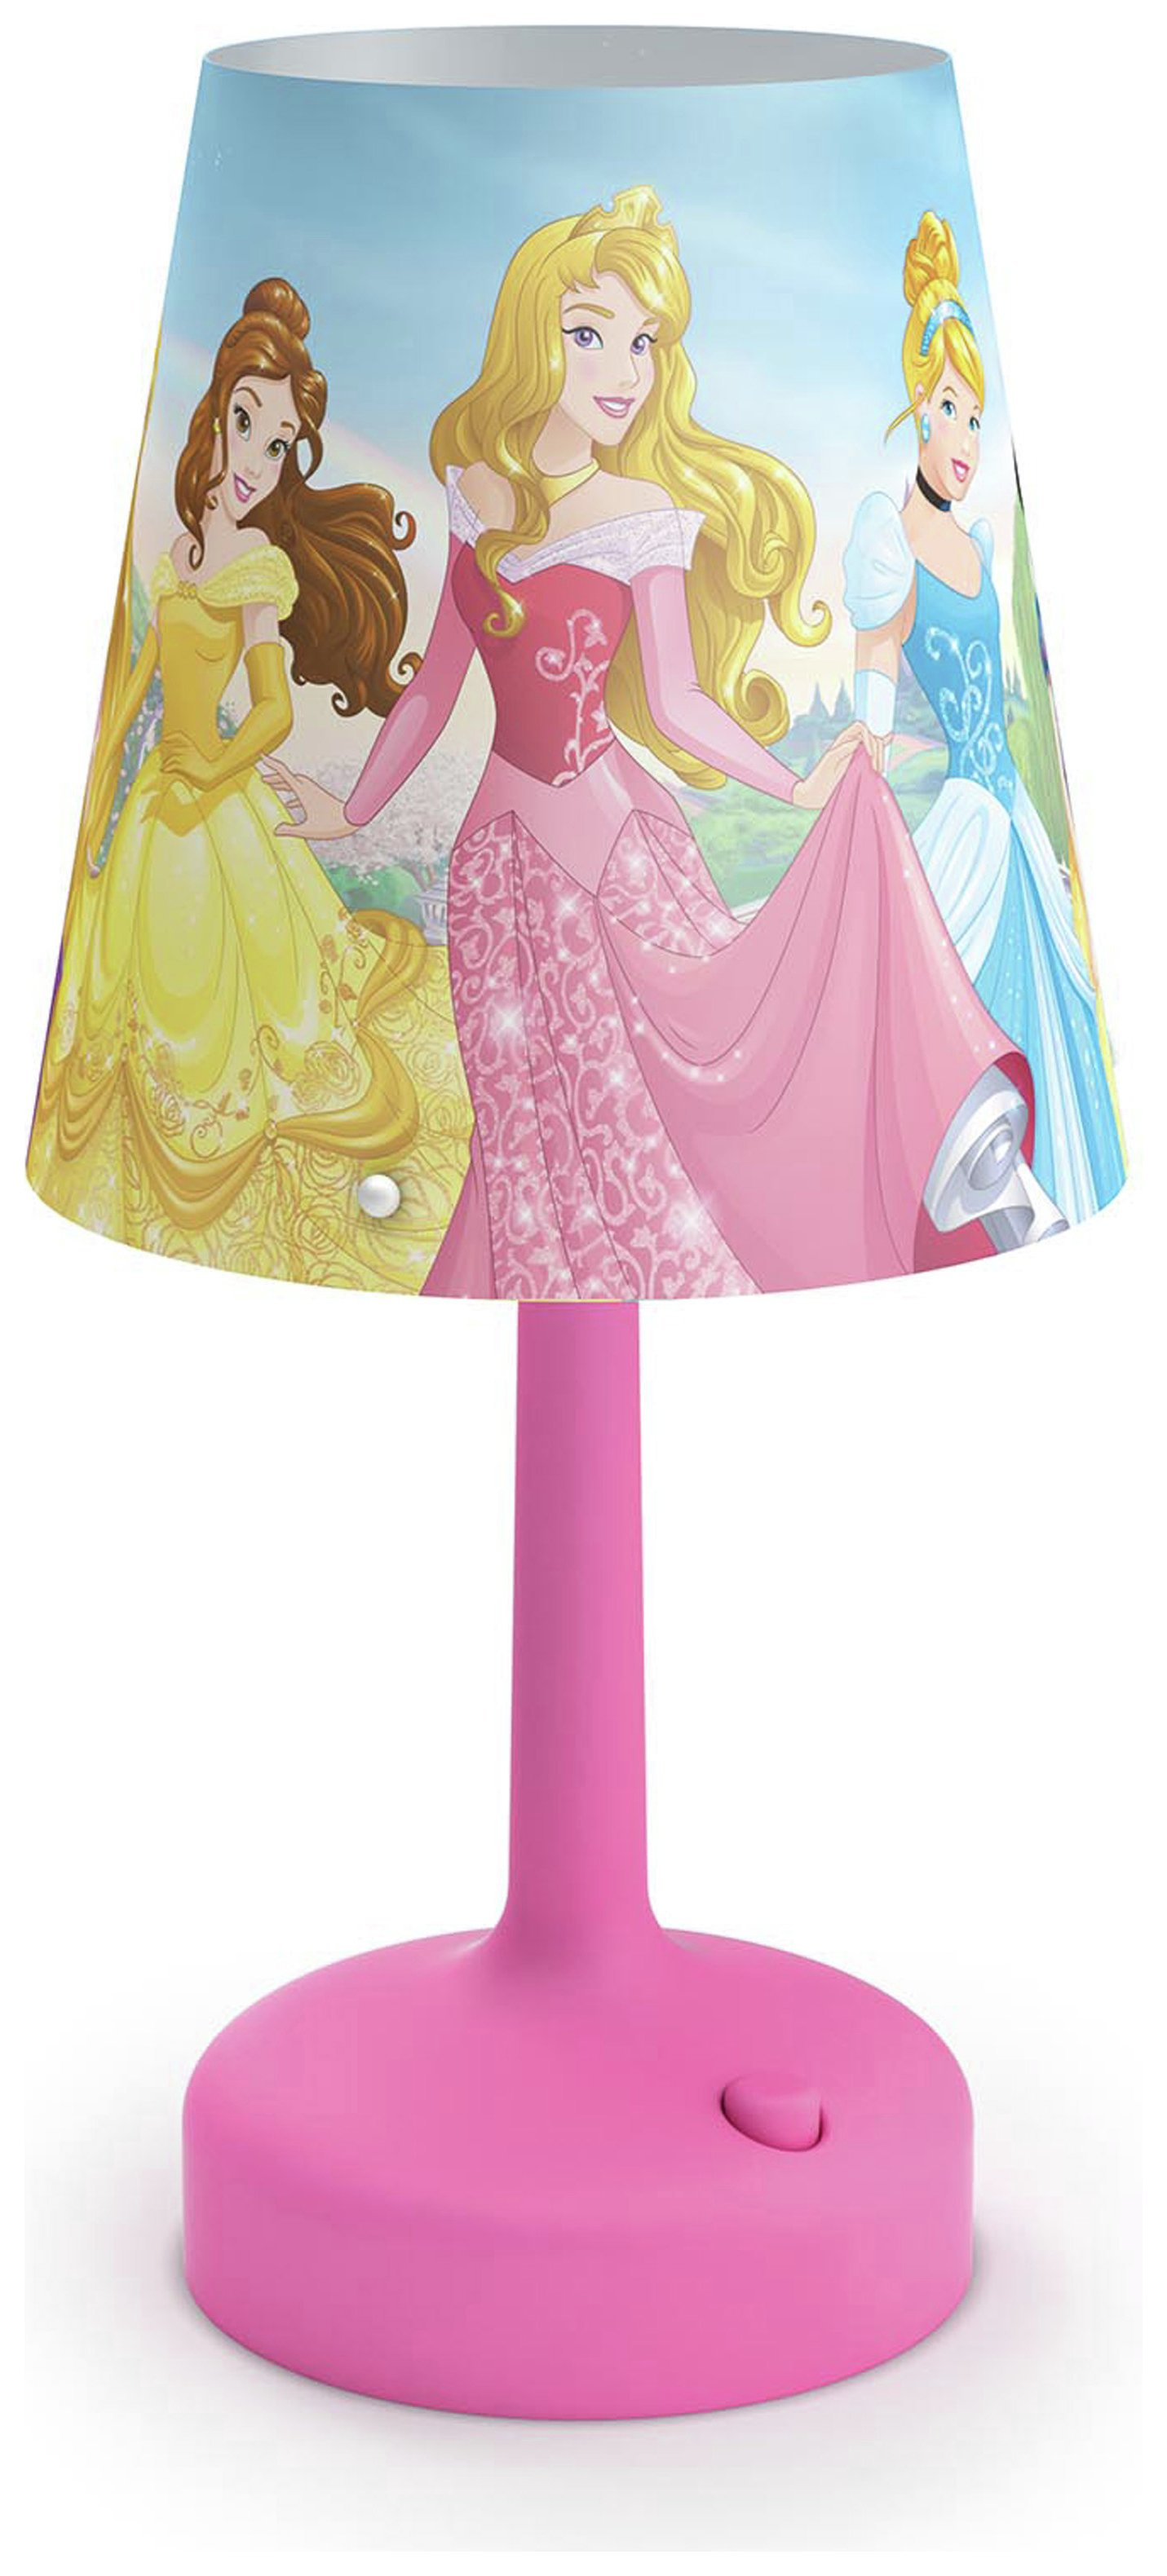 Image of Philips - Disney Princess - Table Lamp - Pink